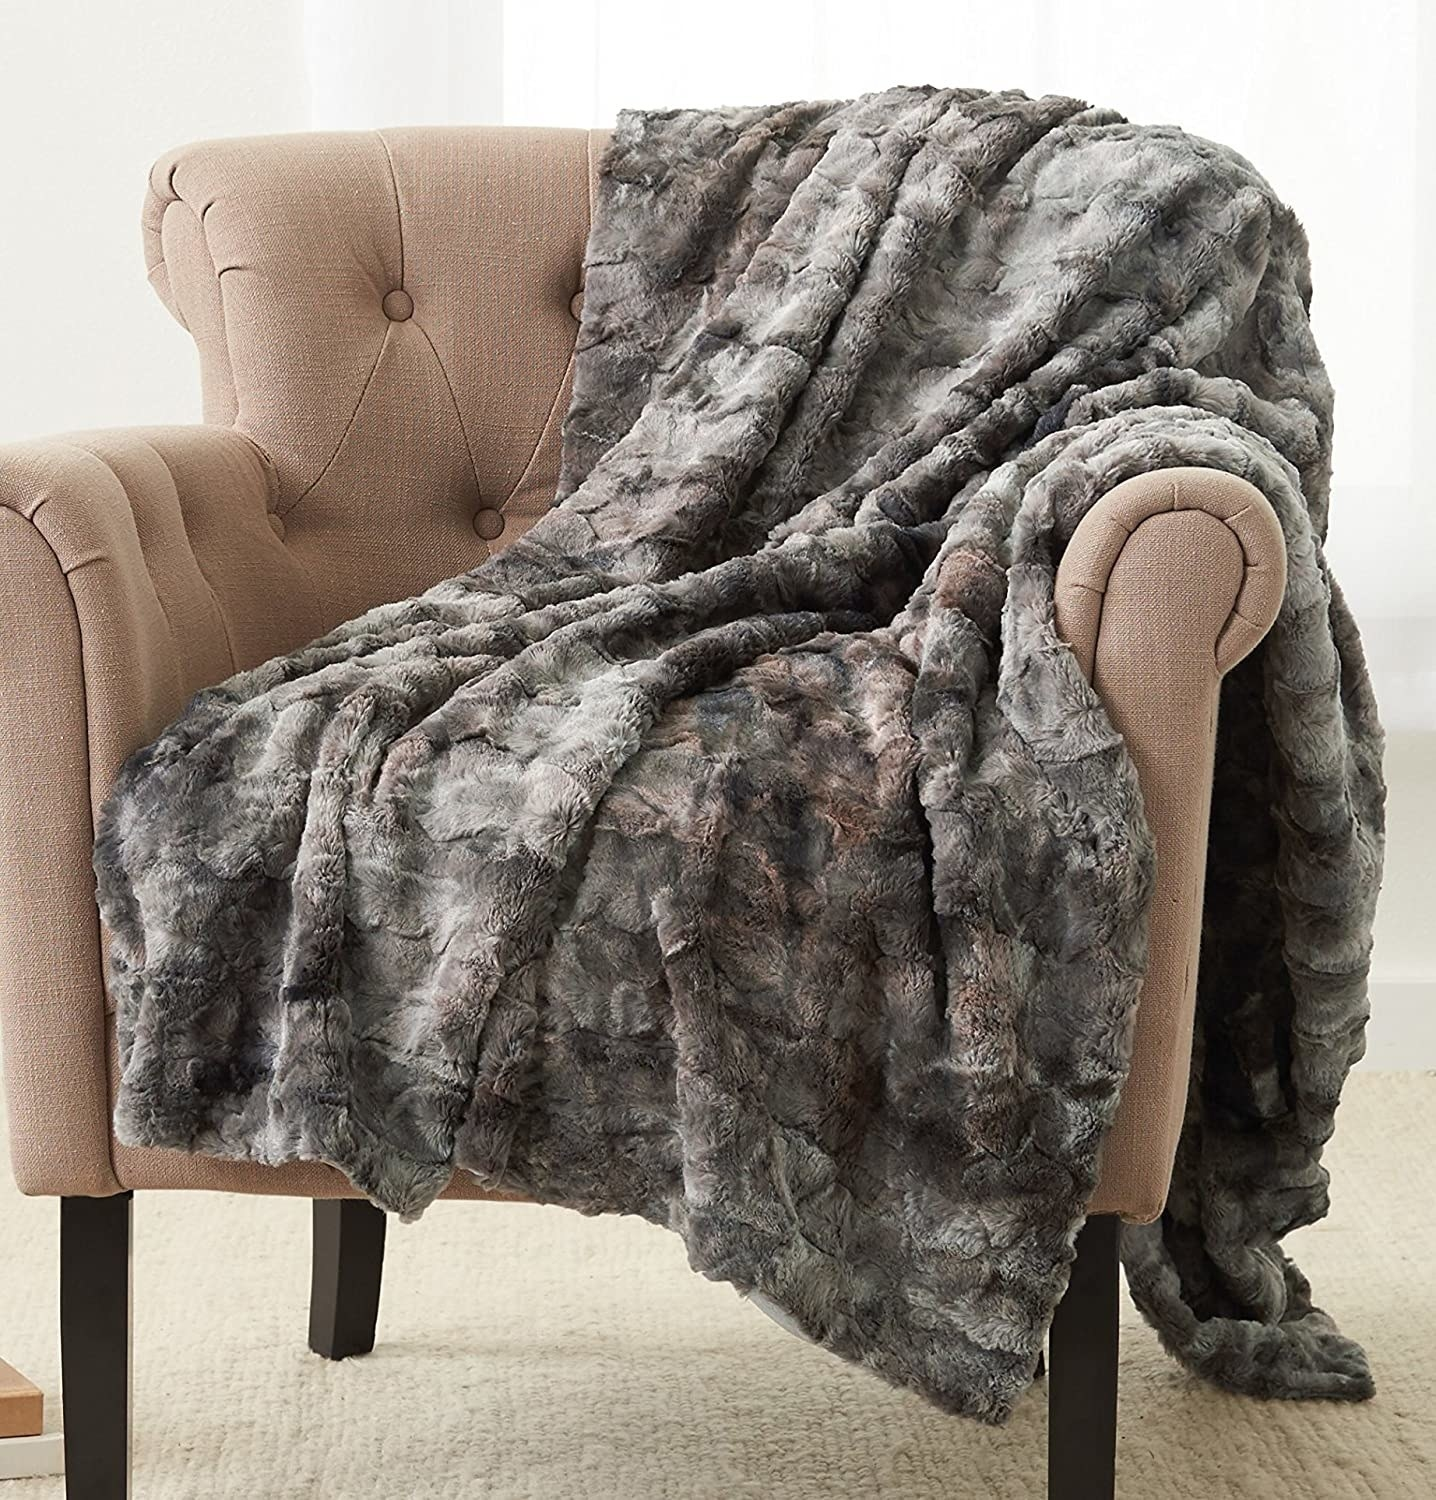 gray faux fur blanket thrown over a side chair